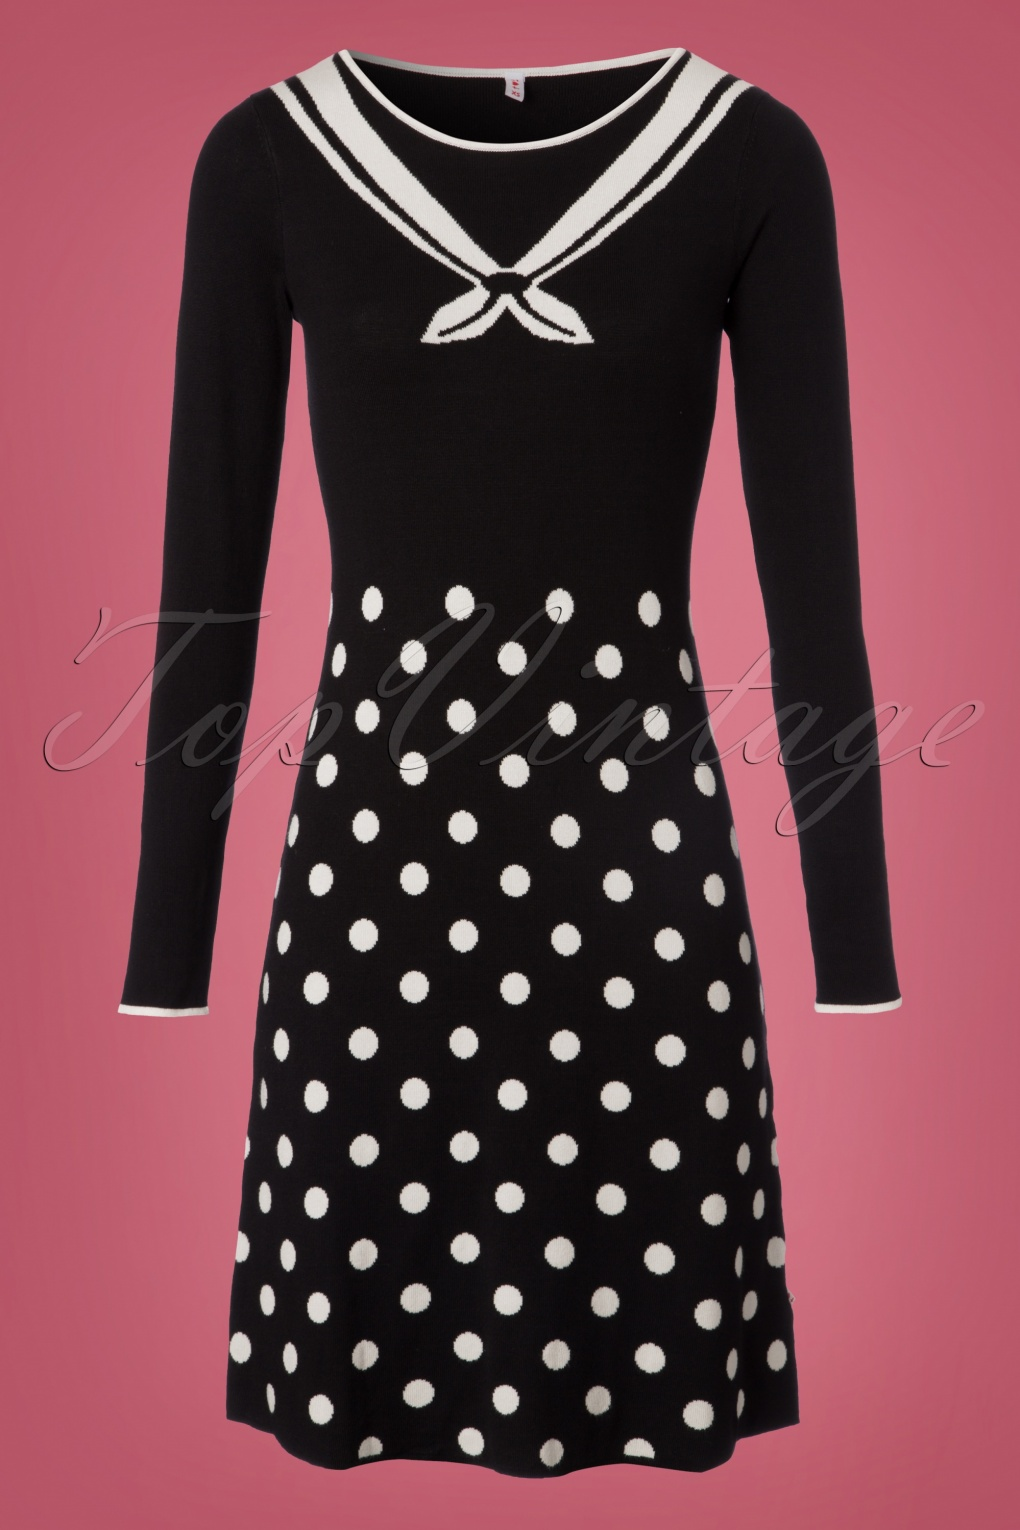 Sailor Dresses, Nautical Dress, Pin Up & WW2 Dresses 60s Three Wishes Dress in Pearls of Snow Black £88.11 AT vintagedancer.com